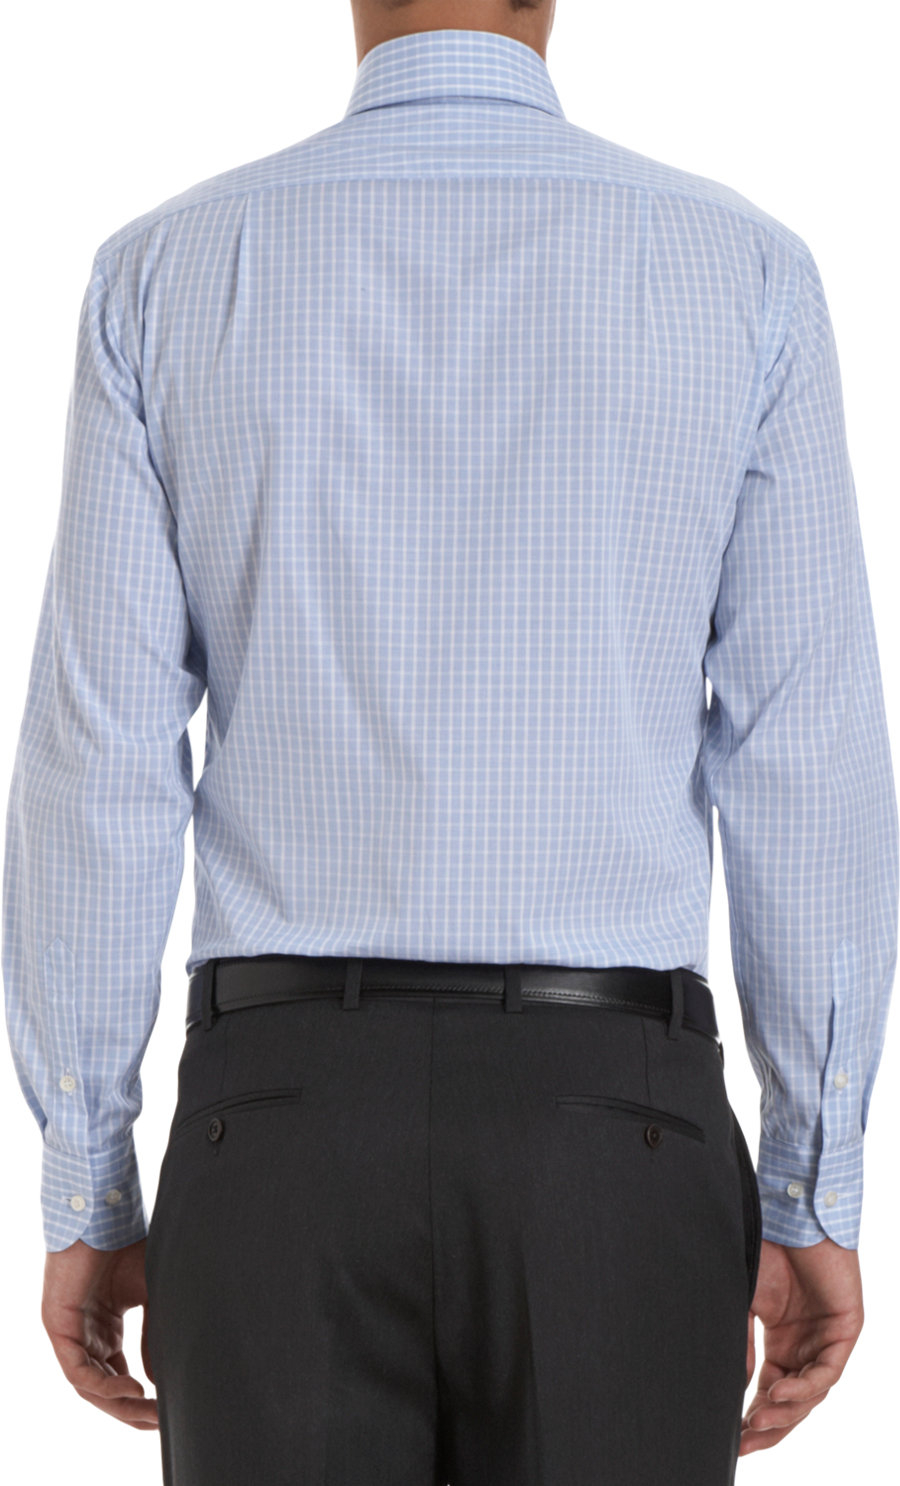 Lyst piattelli check dress shirt in blue for men for Blue check dress shirt